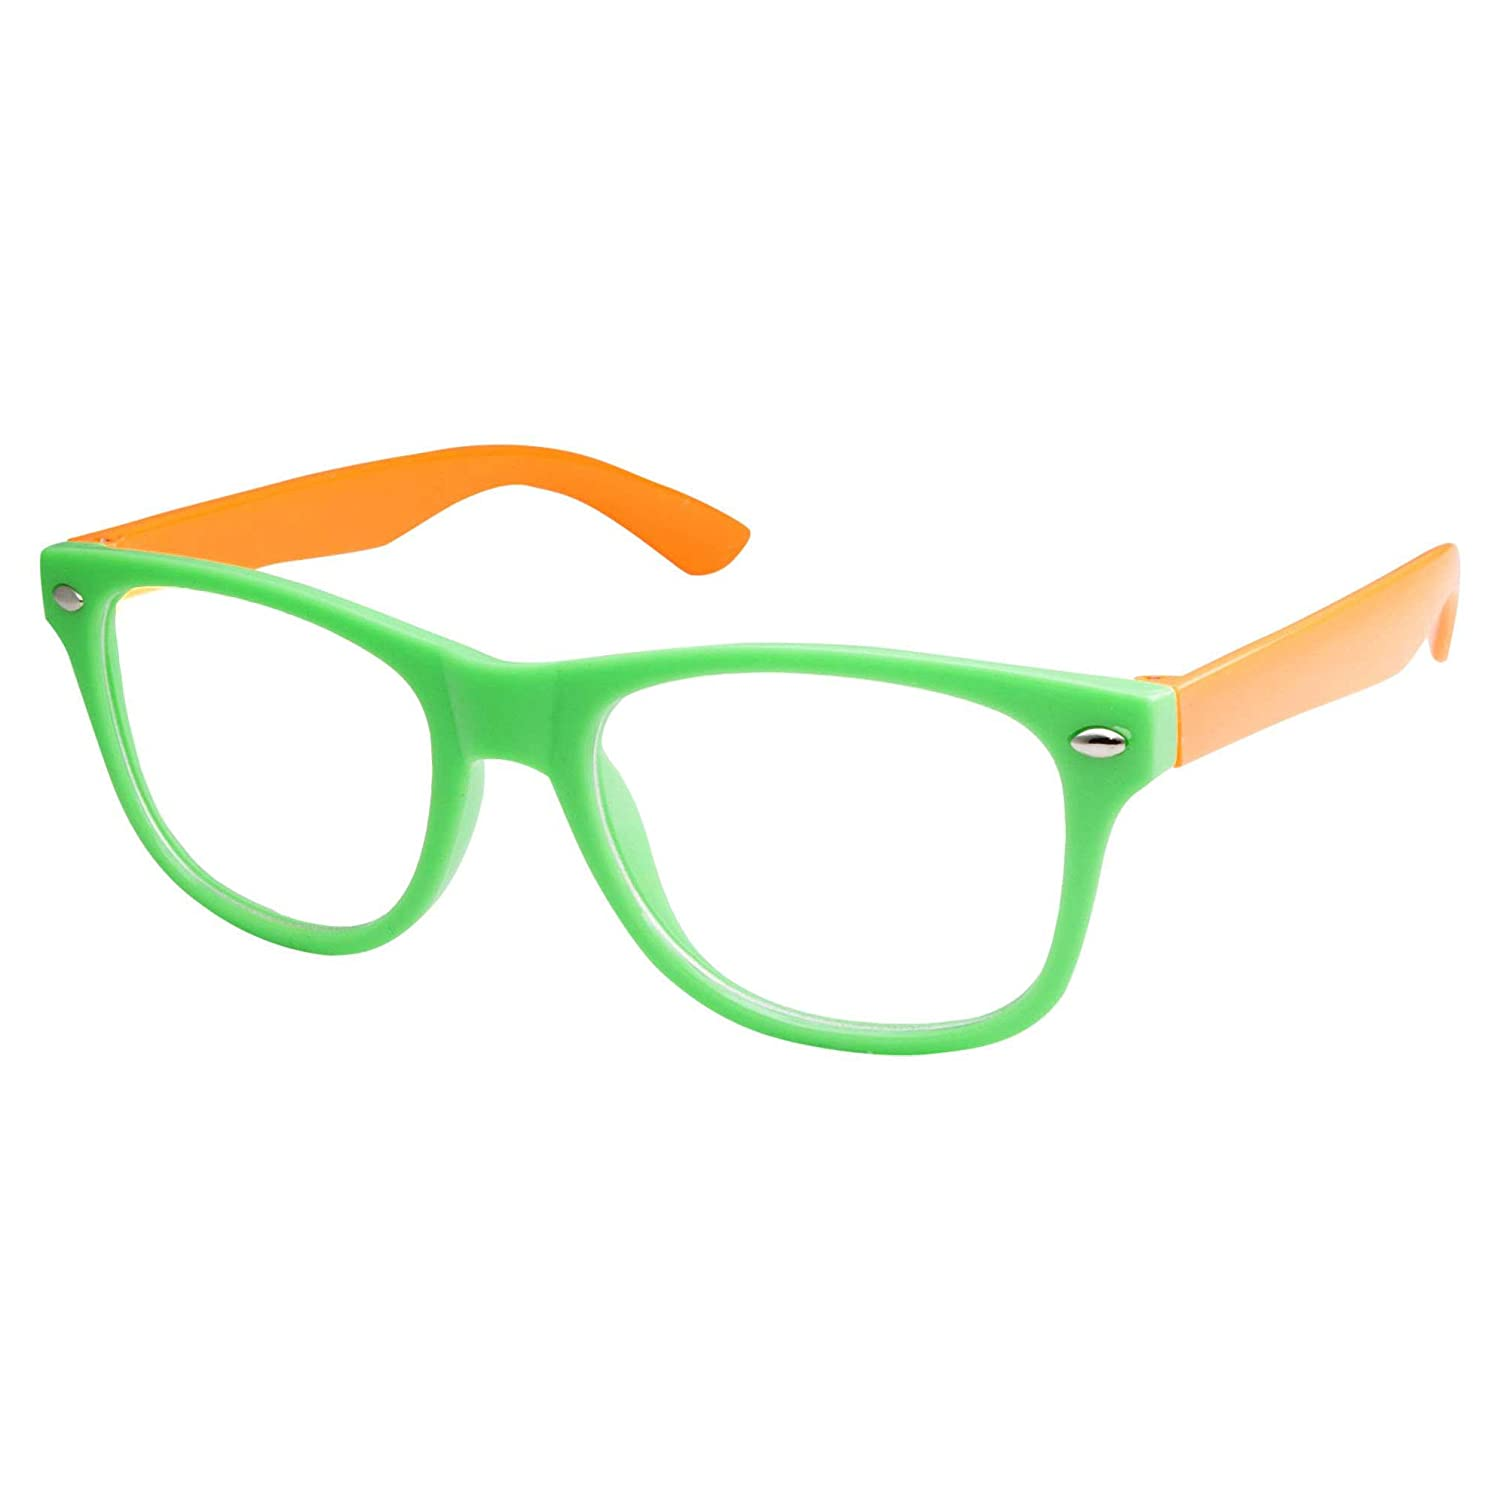 Amazon.com: Kids Nerd Fake Glasses Clear Lens Colored Arms Geek ...